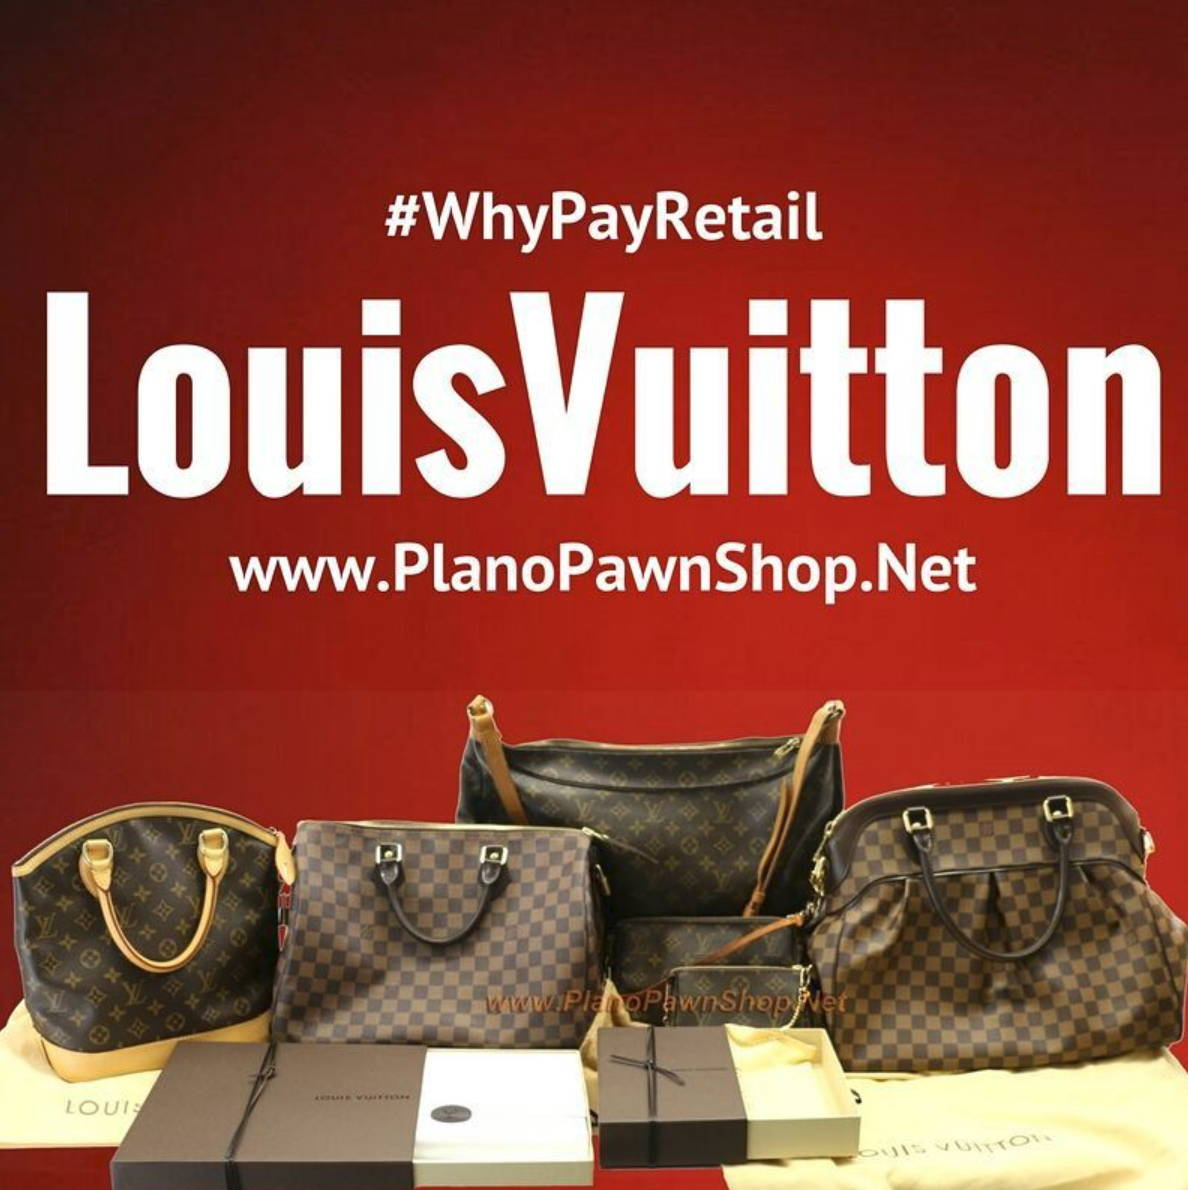 louis vuitton luxury at plano pawn shop prices